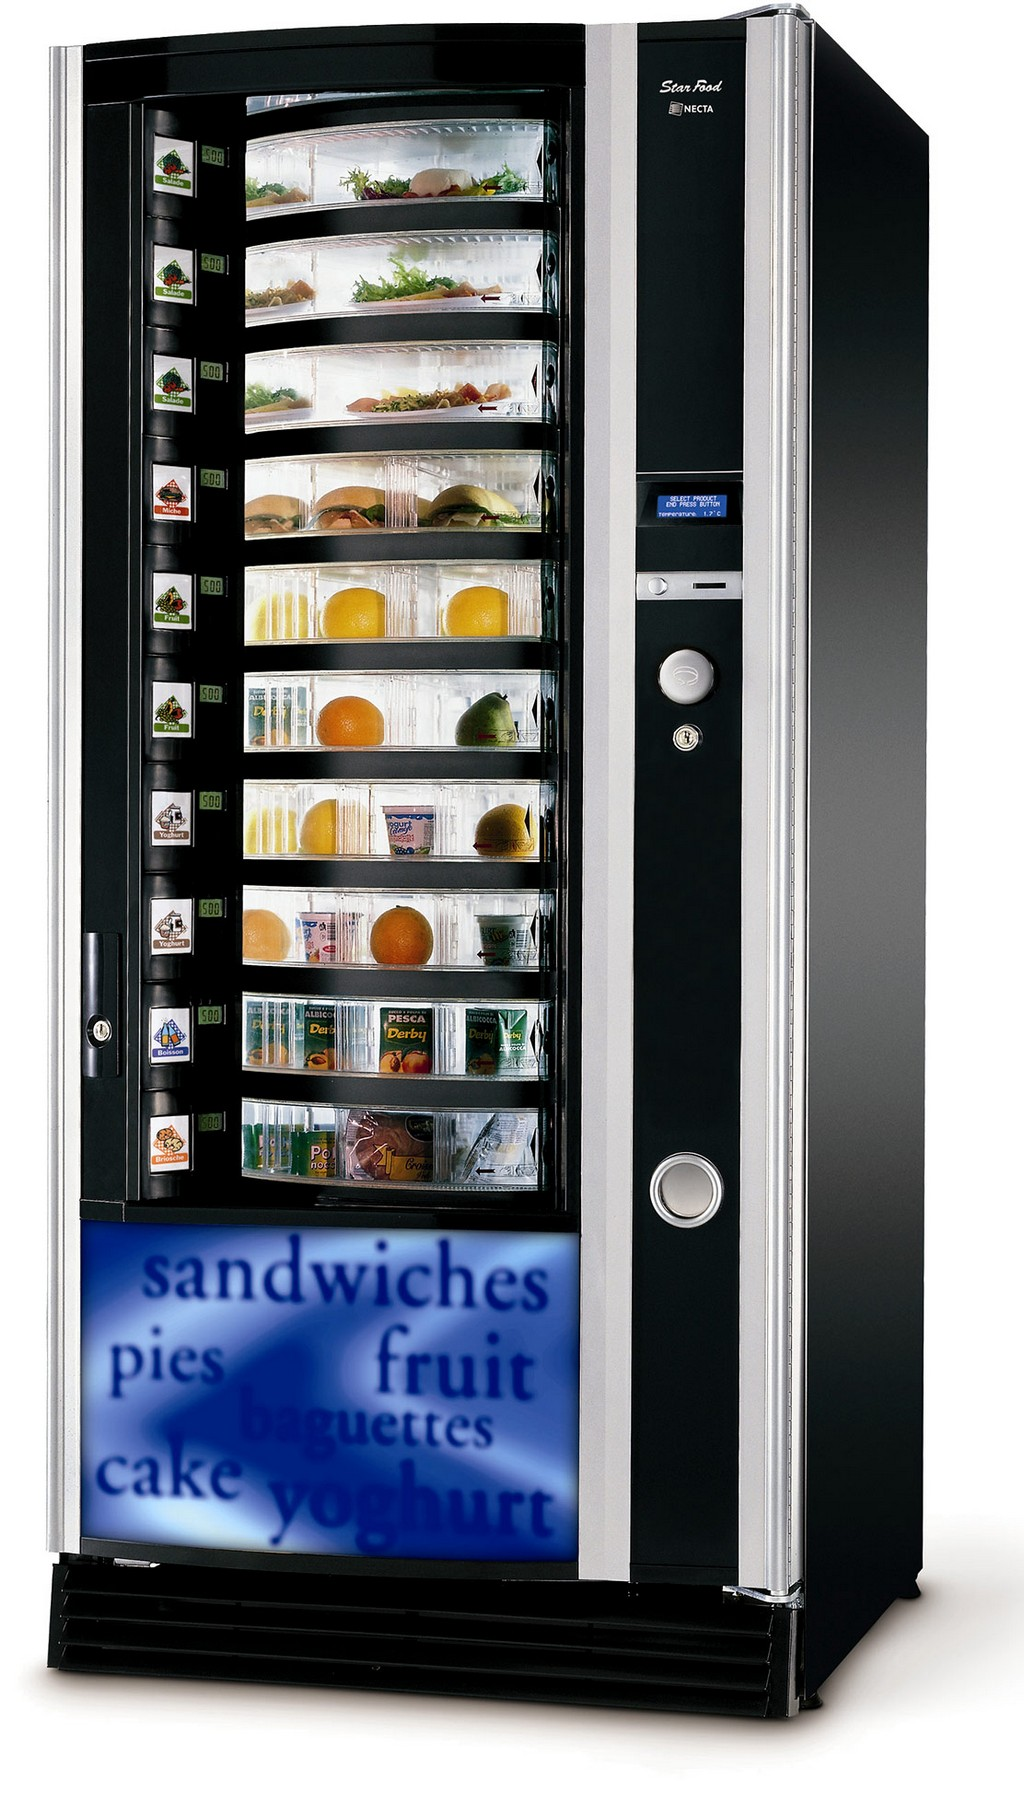 used vending machine for sale, latest vending machine, popcorn vending machine